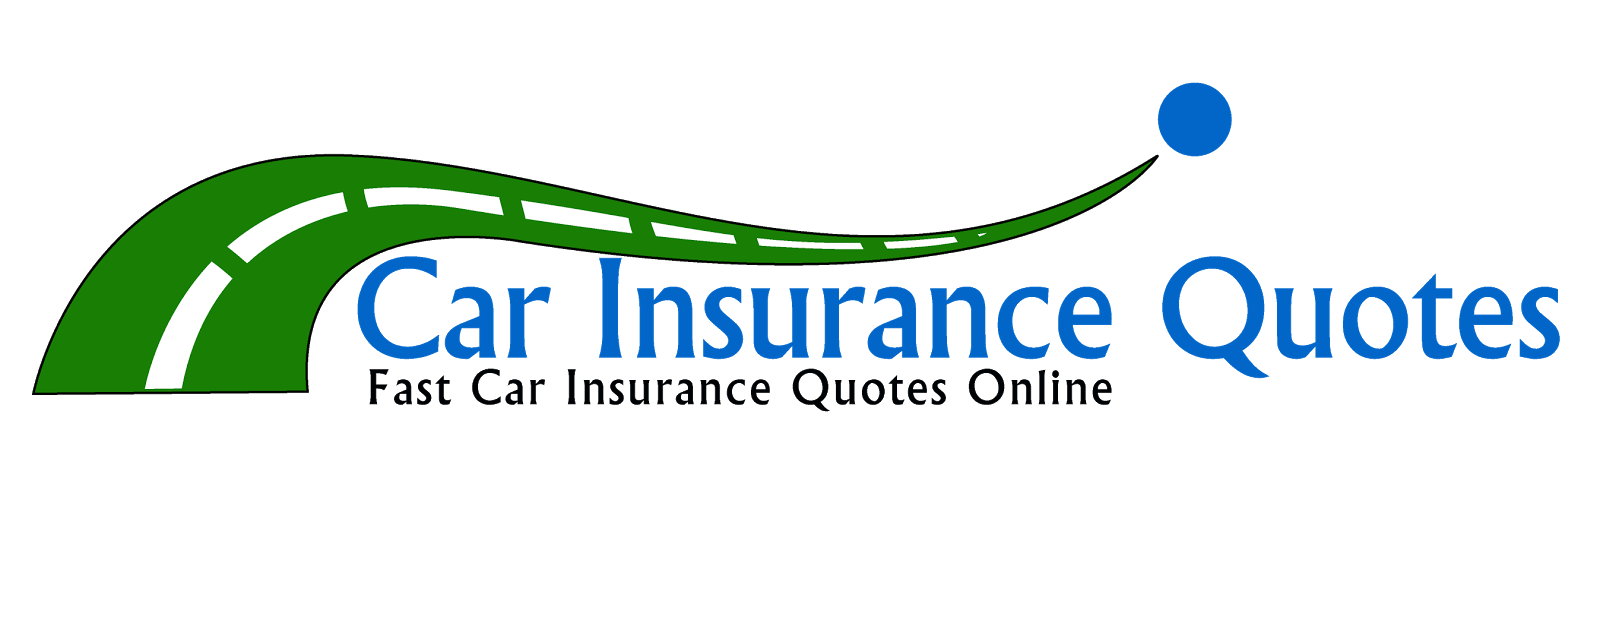 Free Car Insurance Quotes Online | Auto Insurance Car